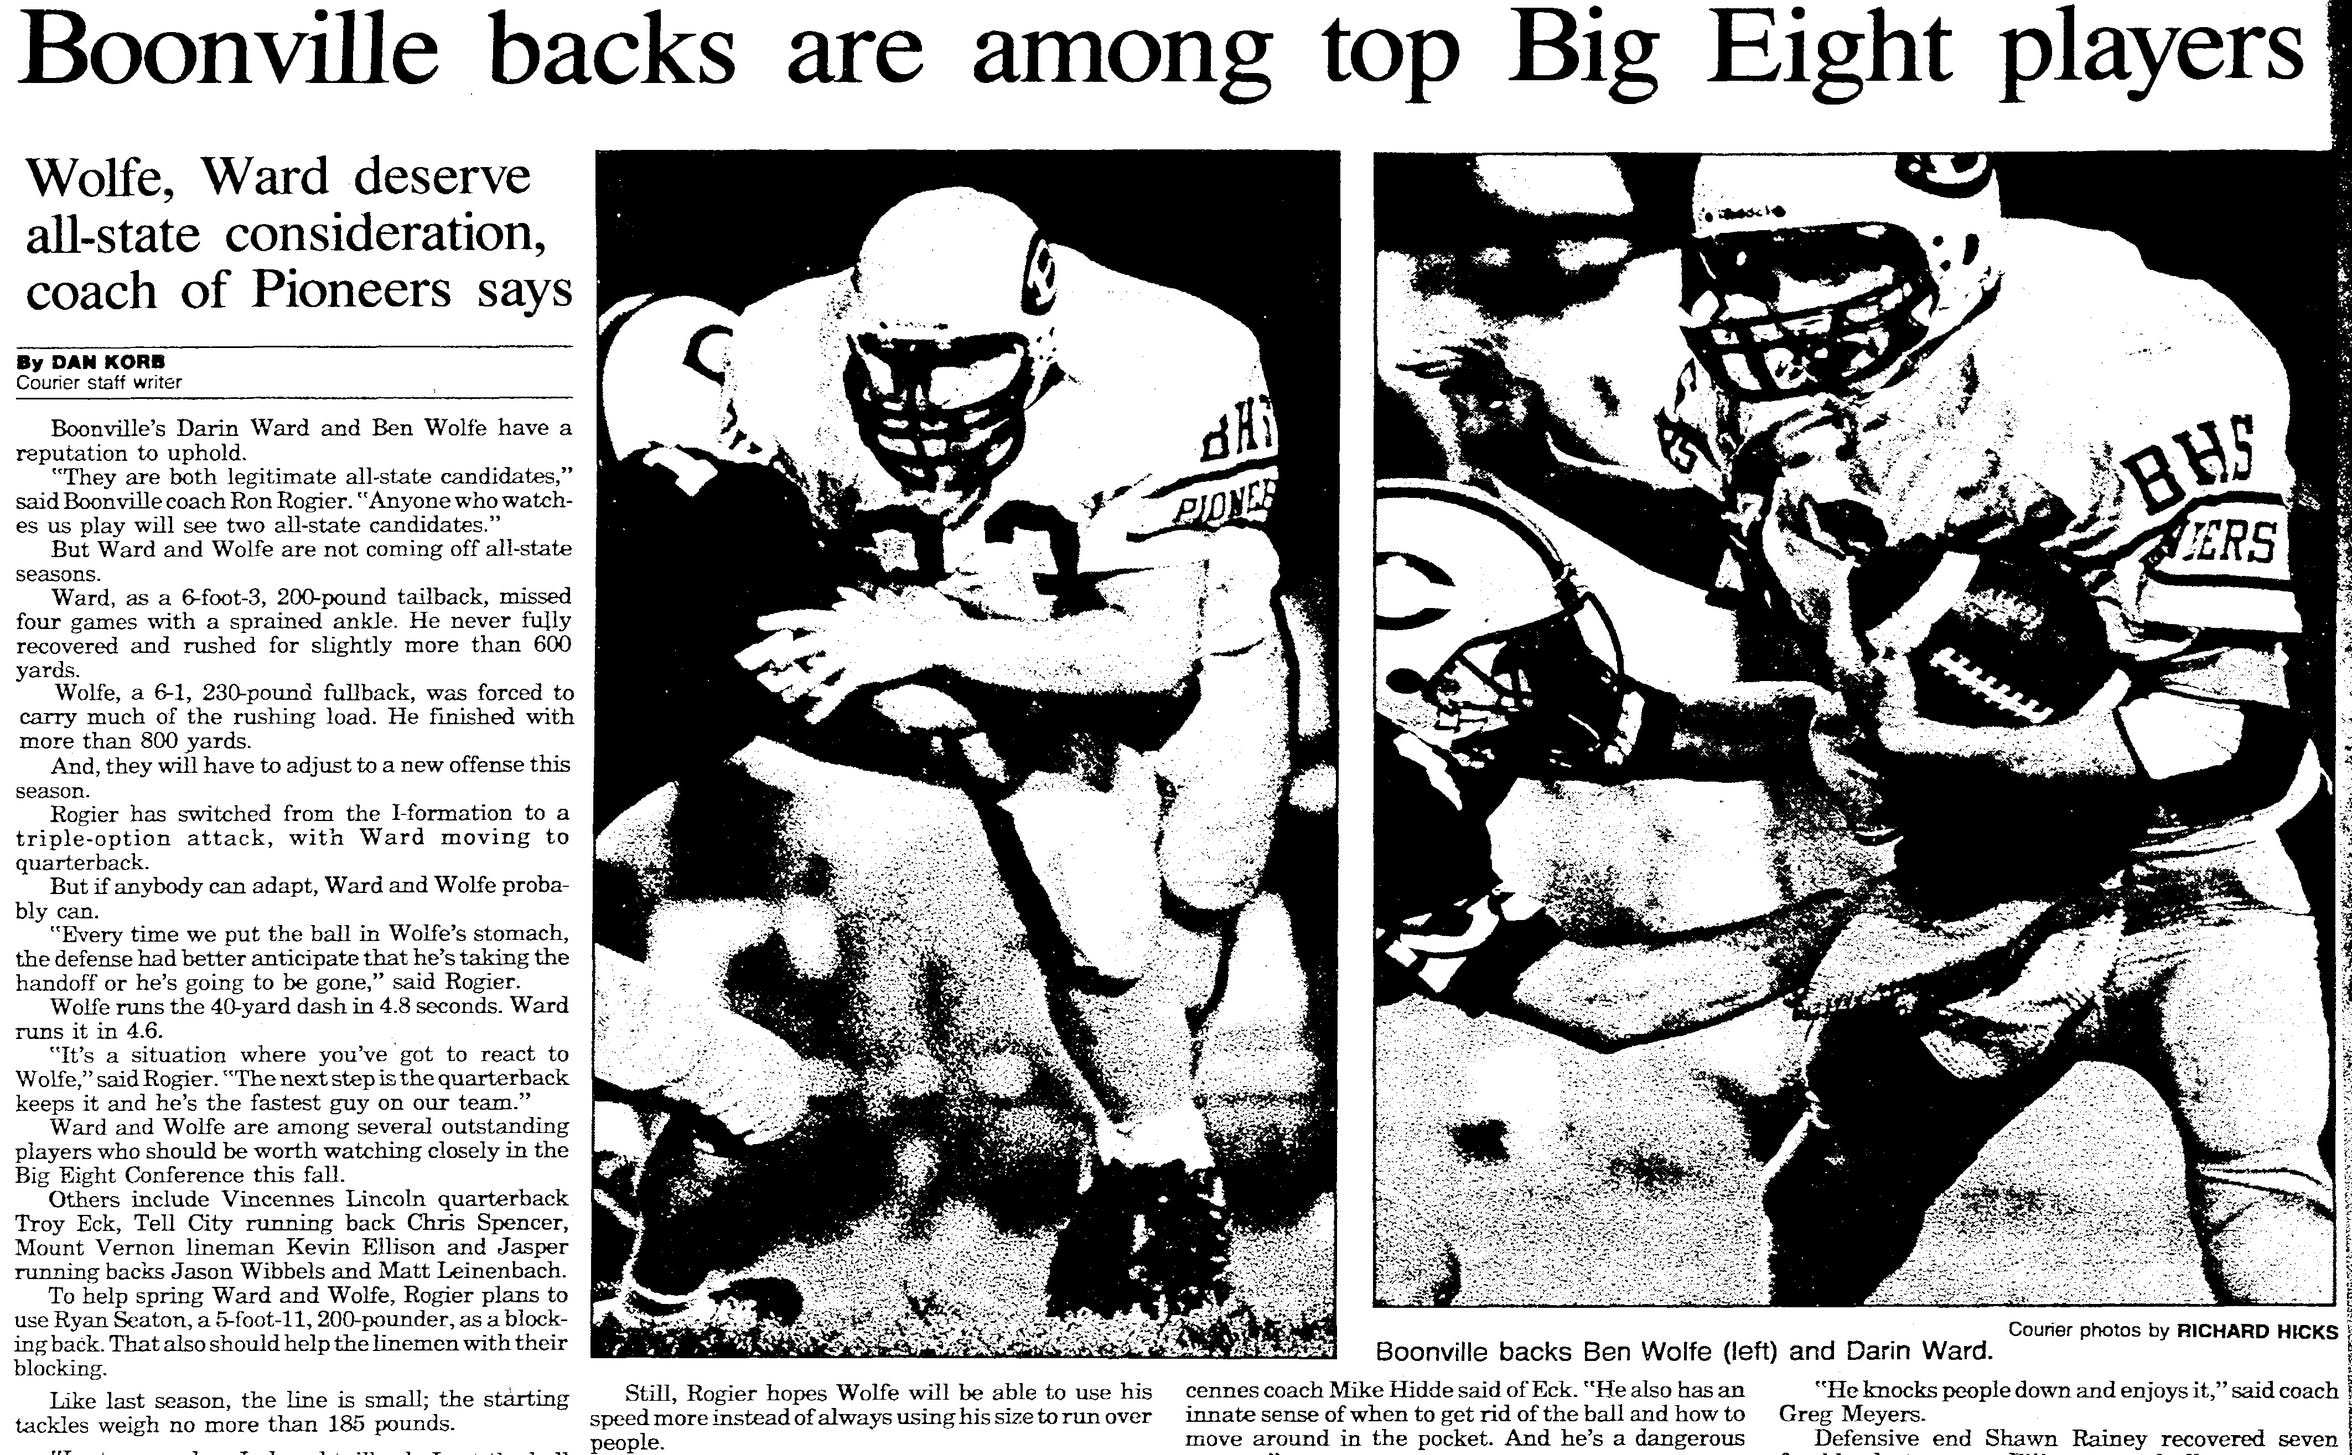 This 1991 Evansville Courier article was a preview of the 1991 high school football season, and boasted that both Ben Wolfe and Darin Ward should have gotten all-state consideration.